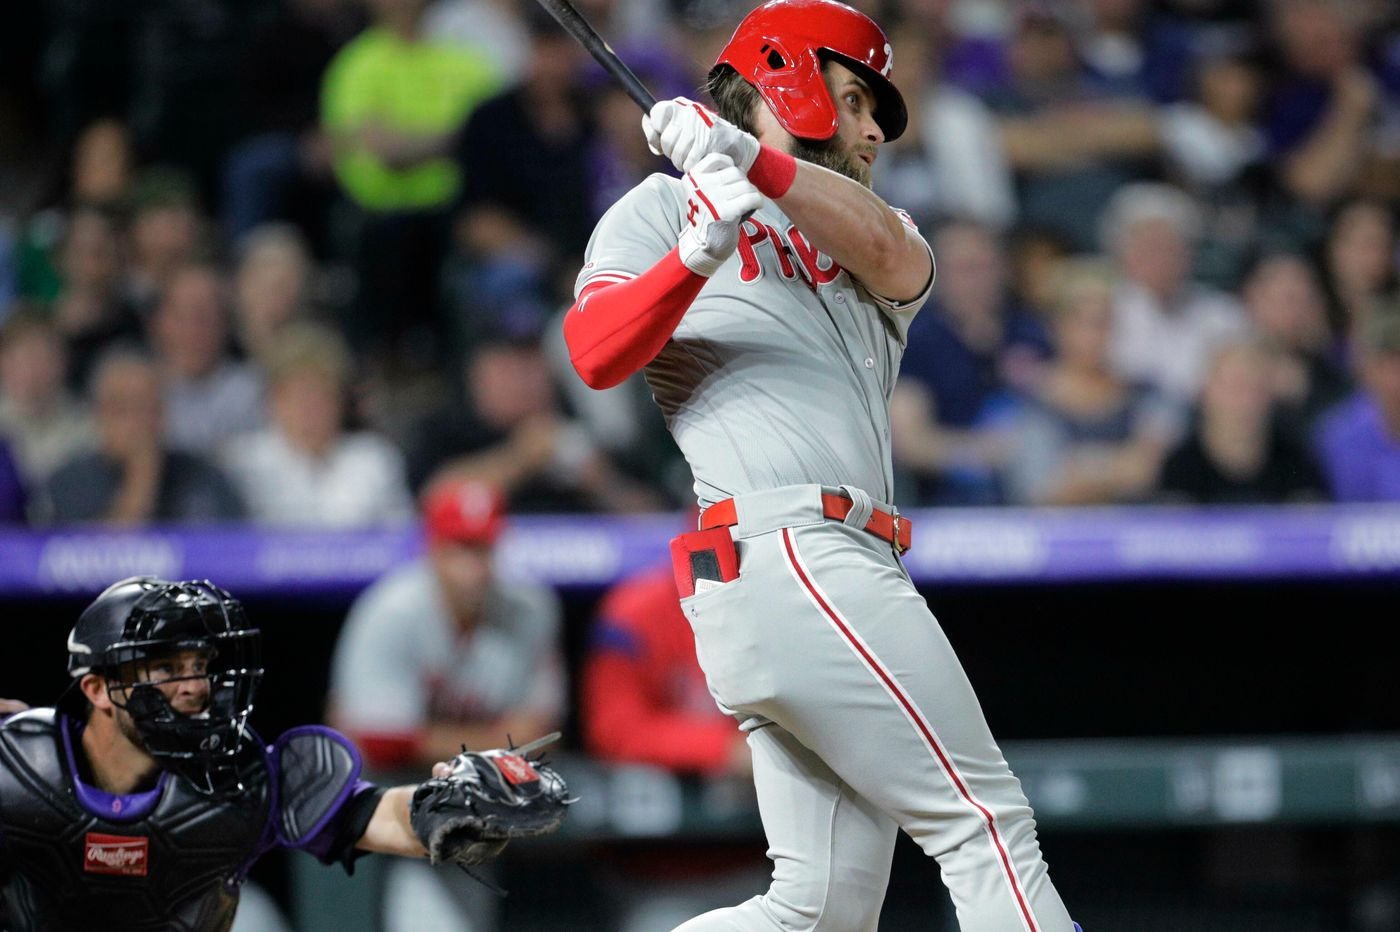 Phillies beat Rockies behind Phil Gosselin's timely double, Bryce Harper's insurance home run as Aaron Nola picks up a win